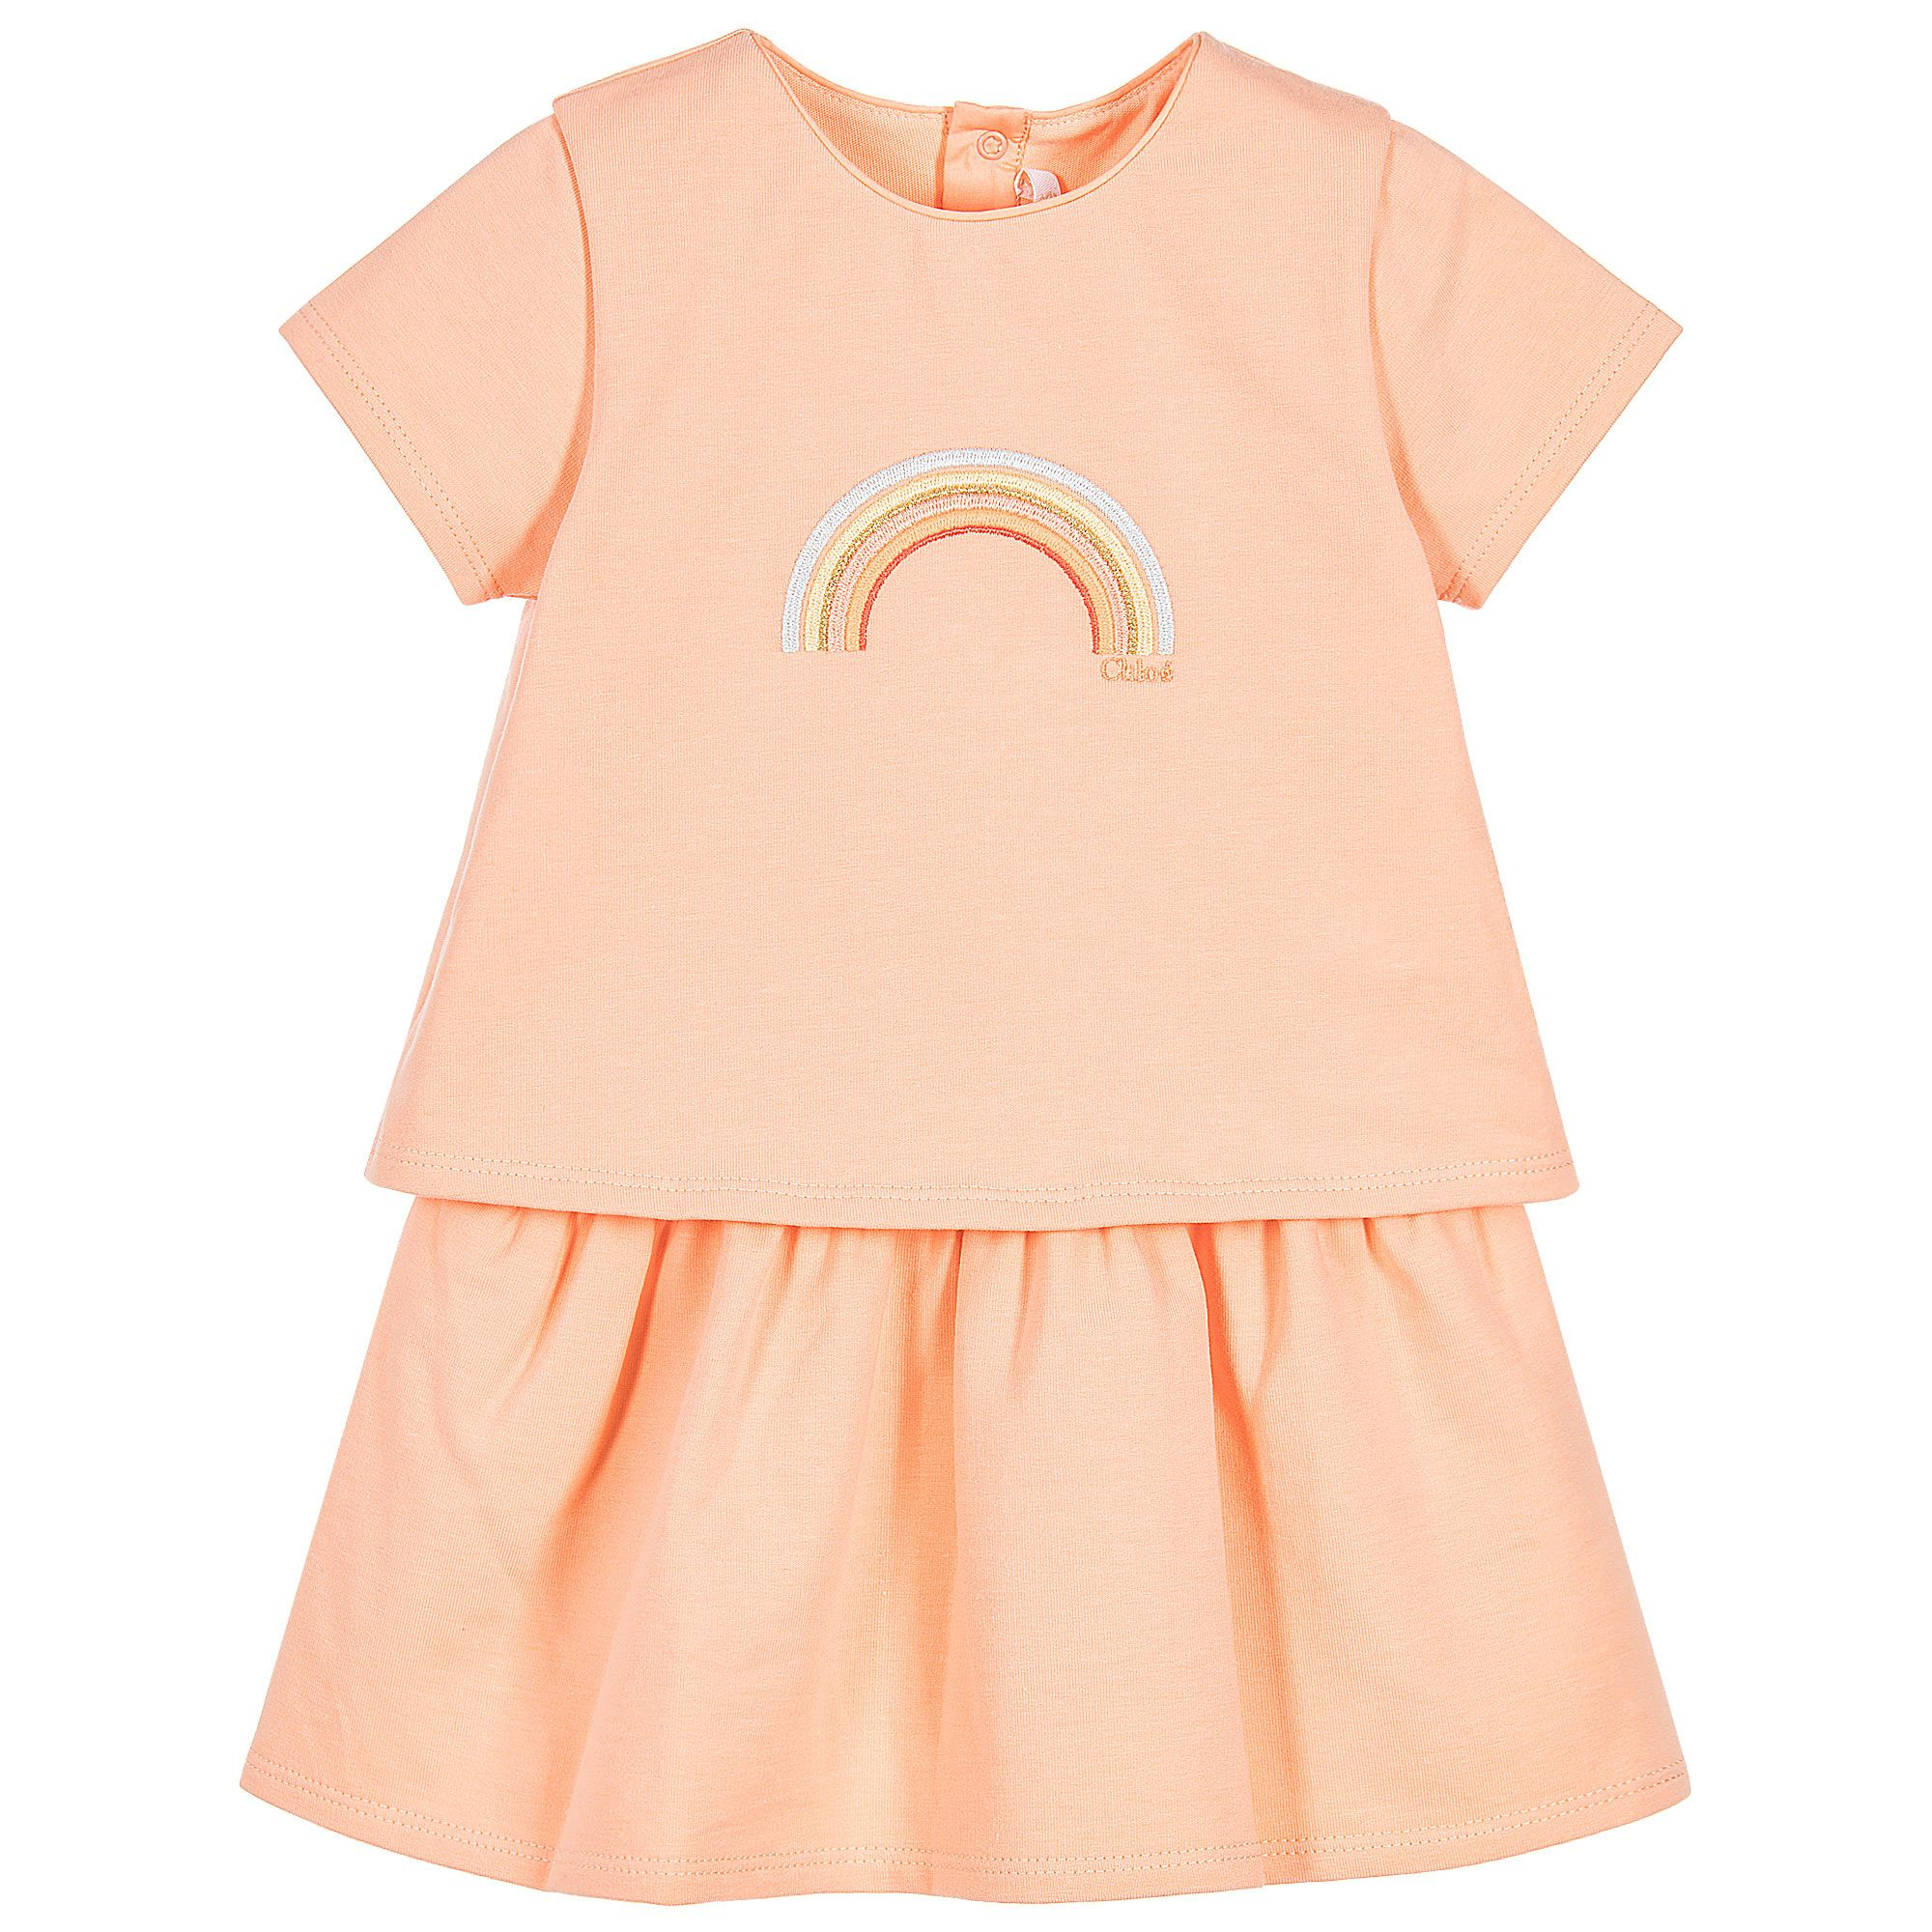 Baby girls pale orange cotton jersey dress from Chloé Made to look